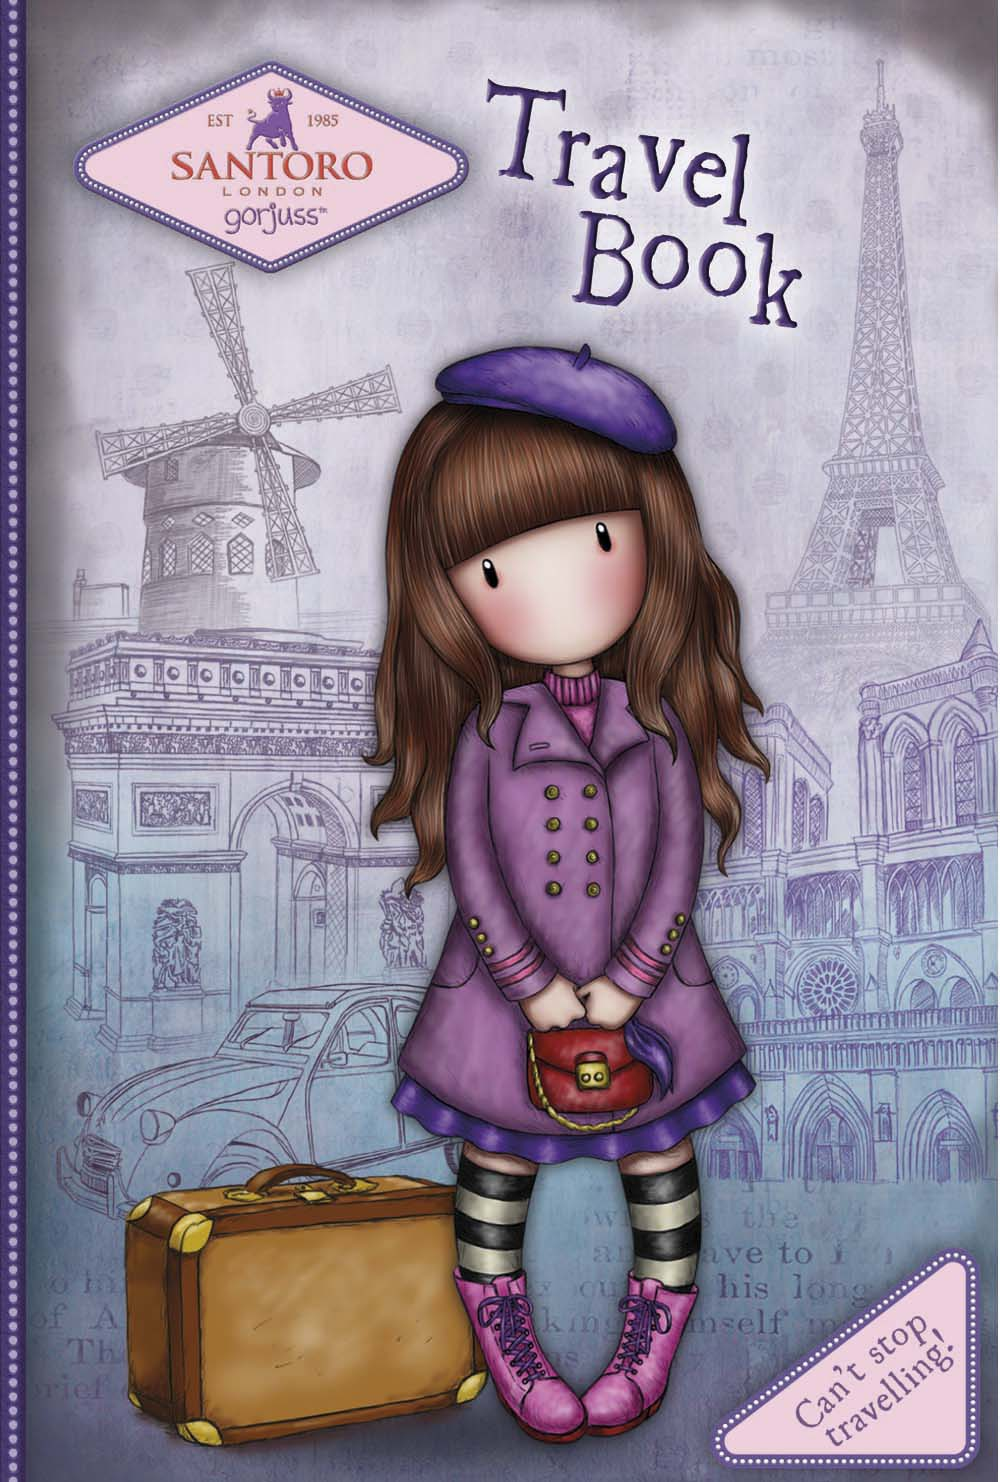 Travel Book - Can't Stop Travelling!